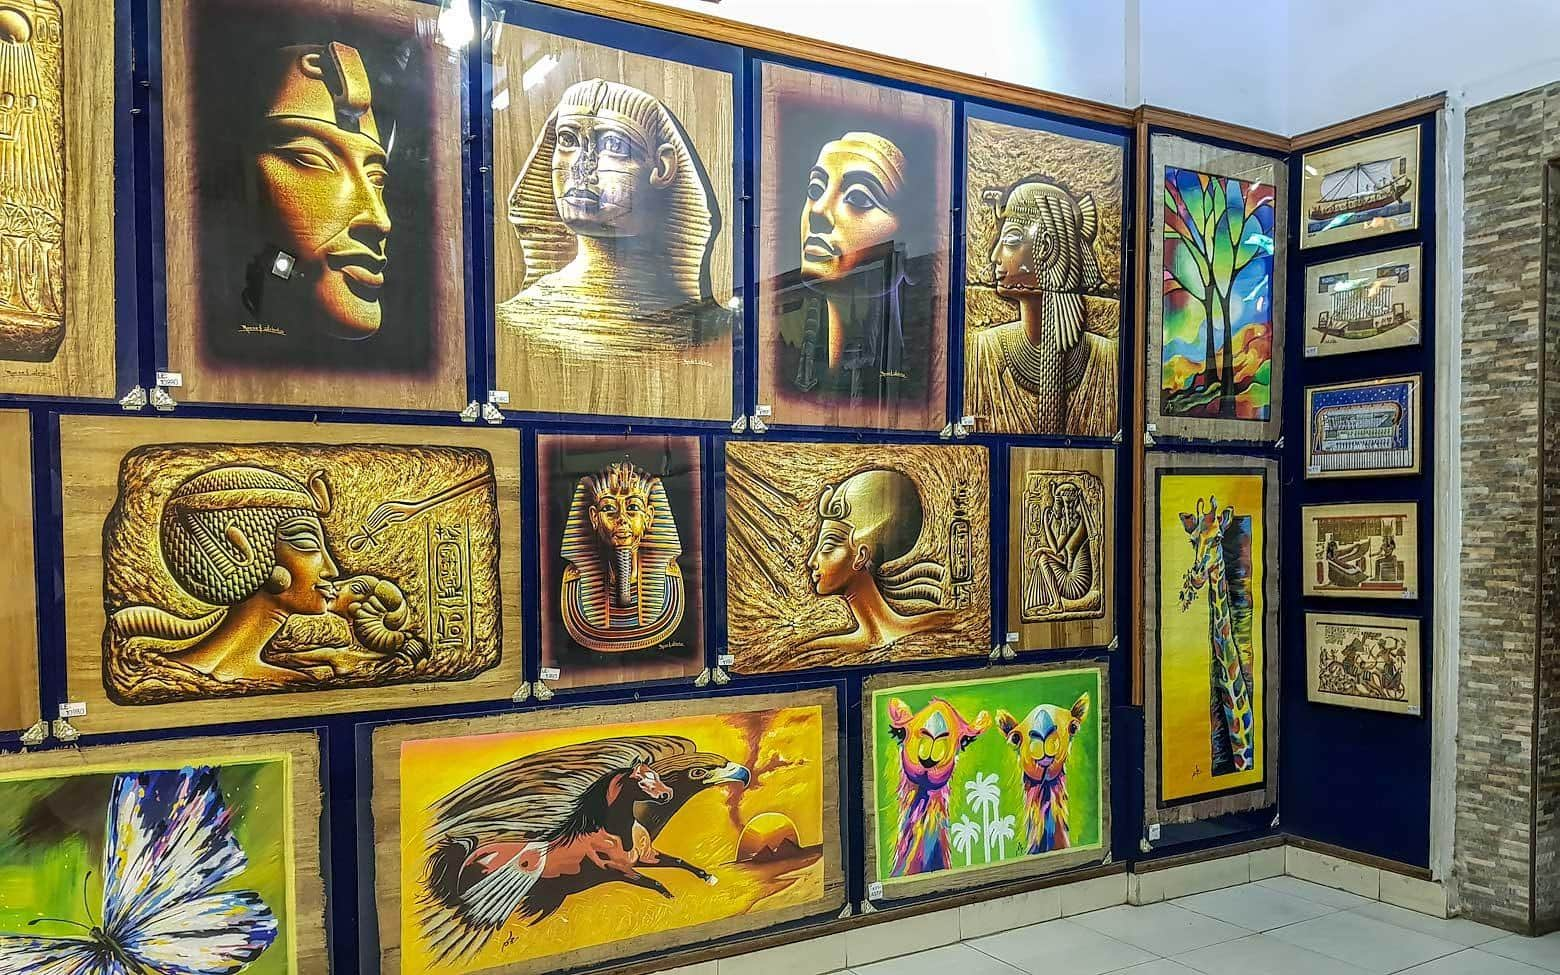 papyrus gallery in cairo egypt